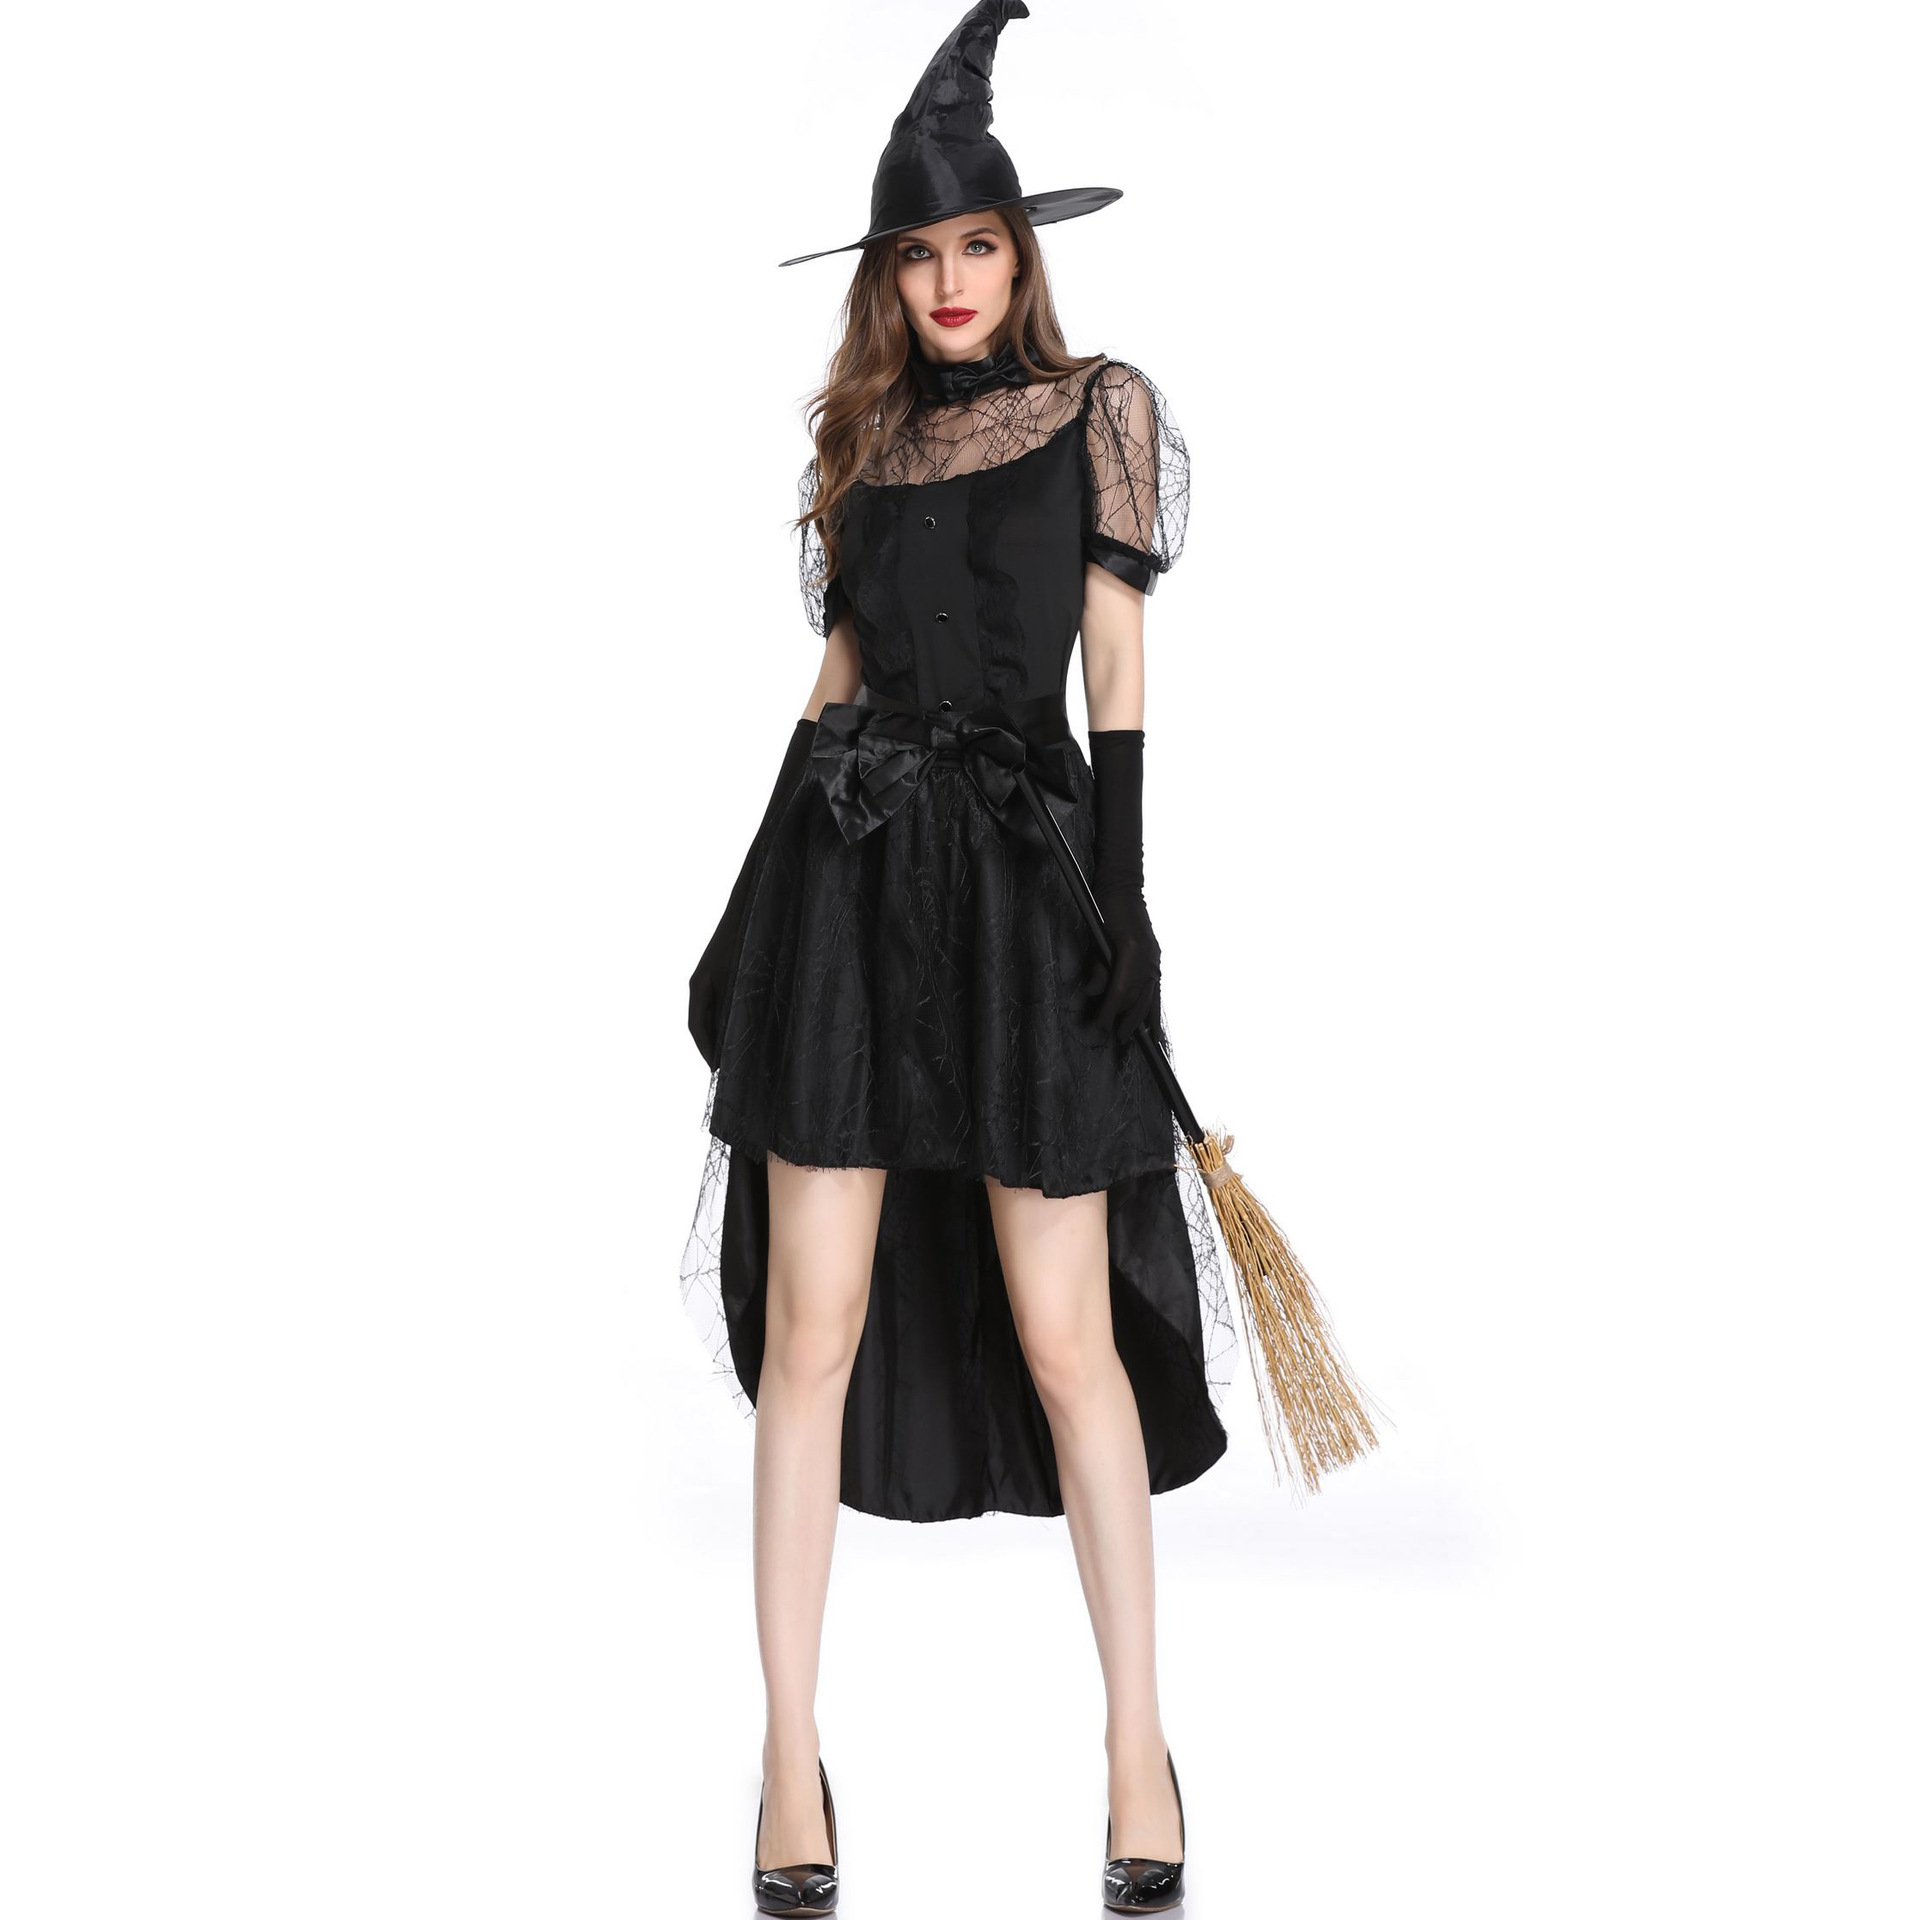 Dancing Stage Costumes <font><b>Halloween</b></font> <font><b>Sexy</b></font> Hollow Gauze Costume <font><b>Adult</b></font> Cosplay <font><b>Witch</b></font> Suit Devil Villain Performance Costume Sportswear image